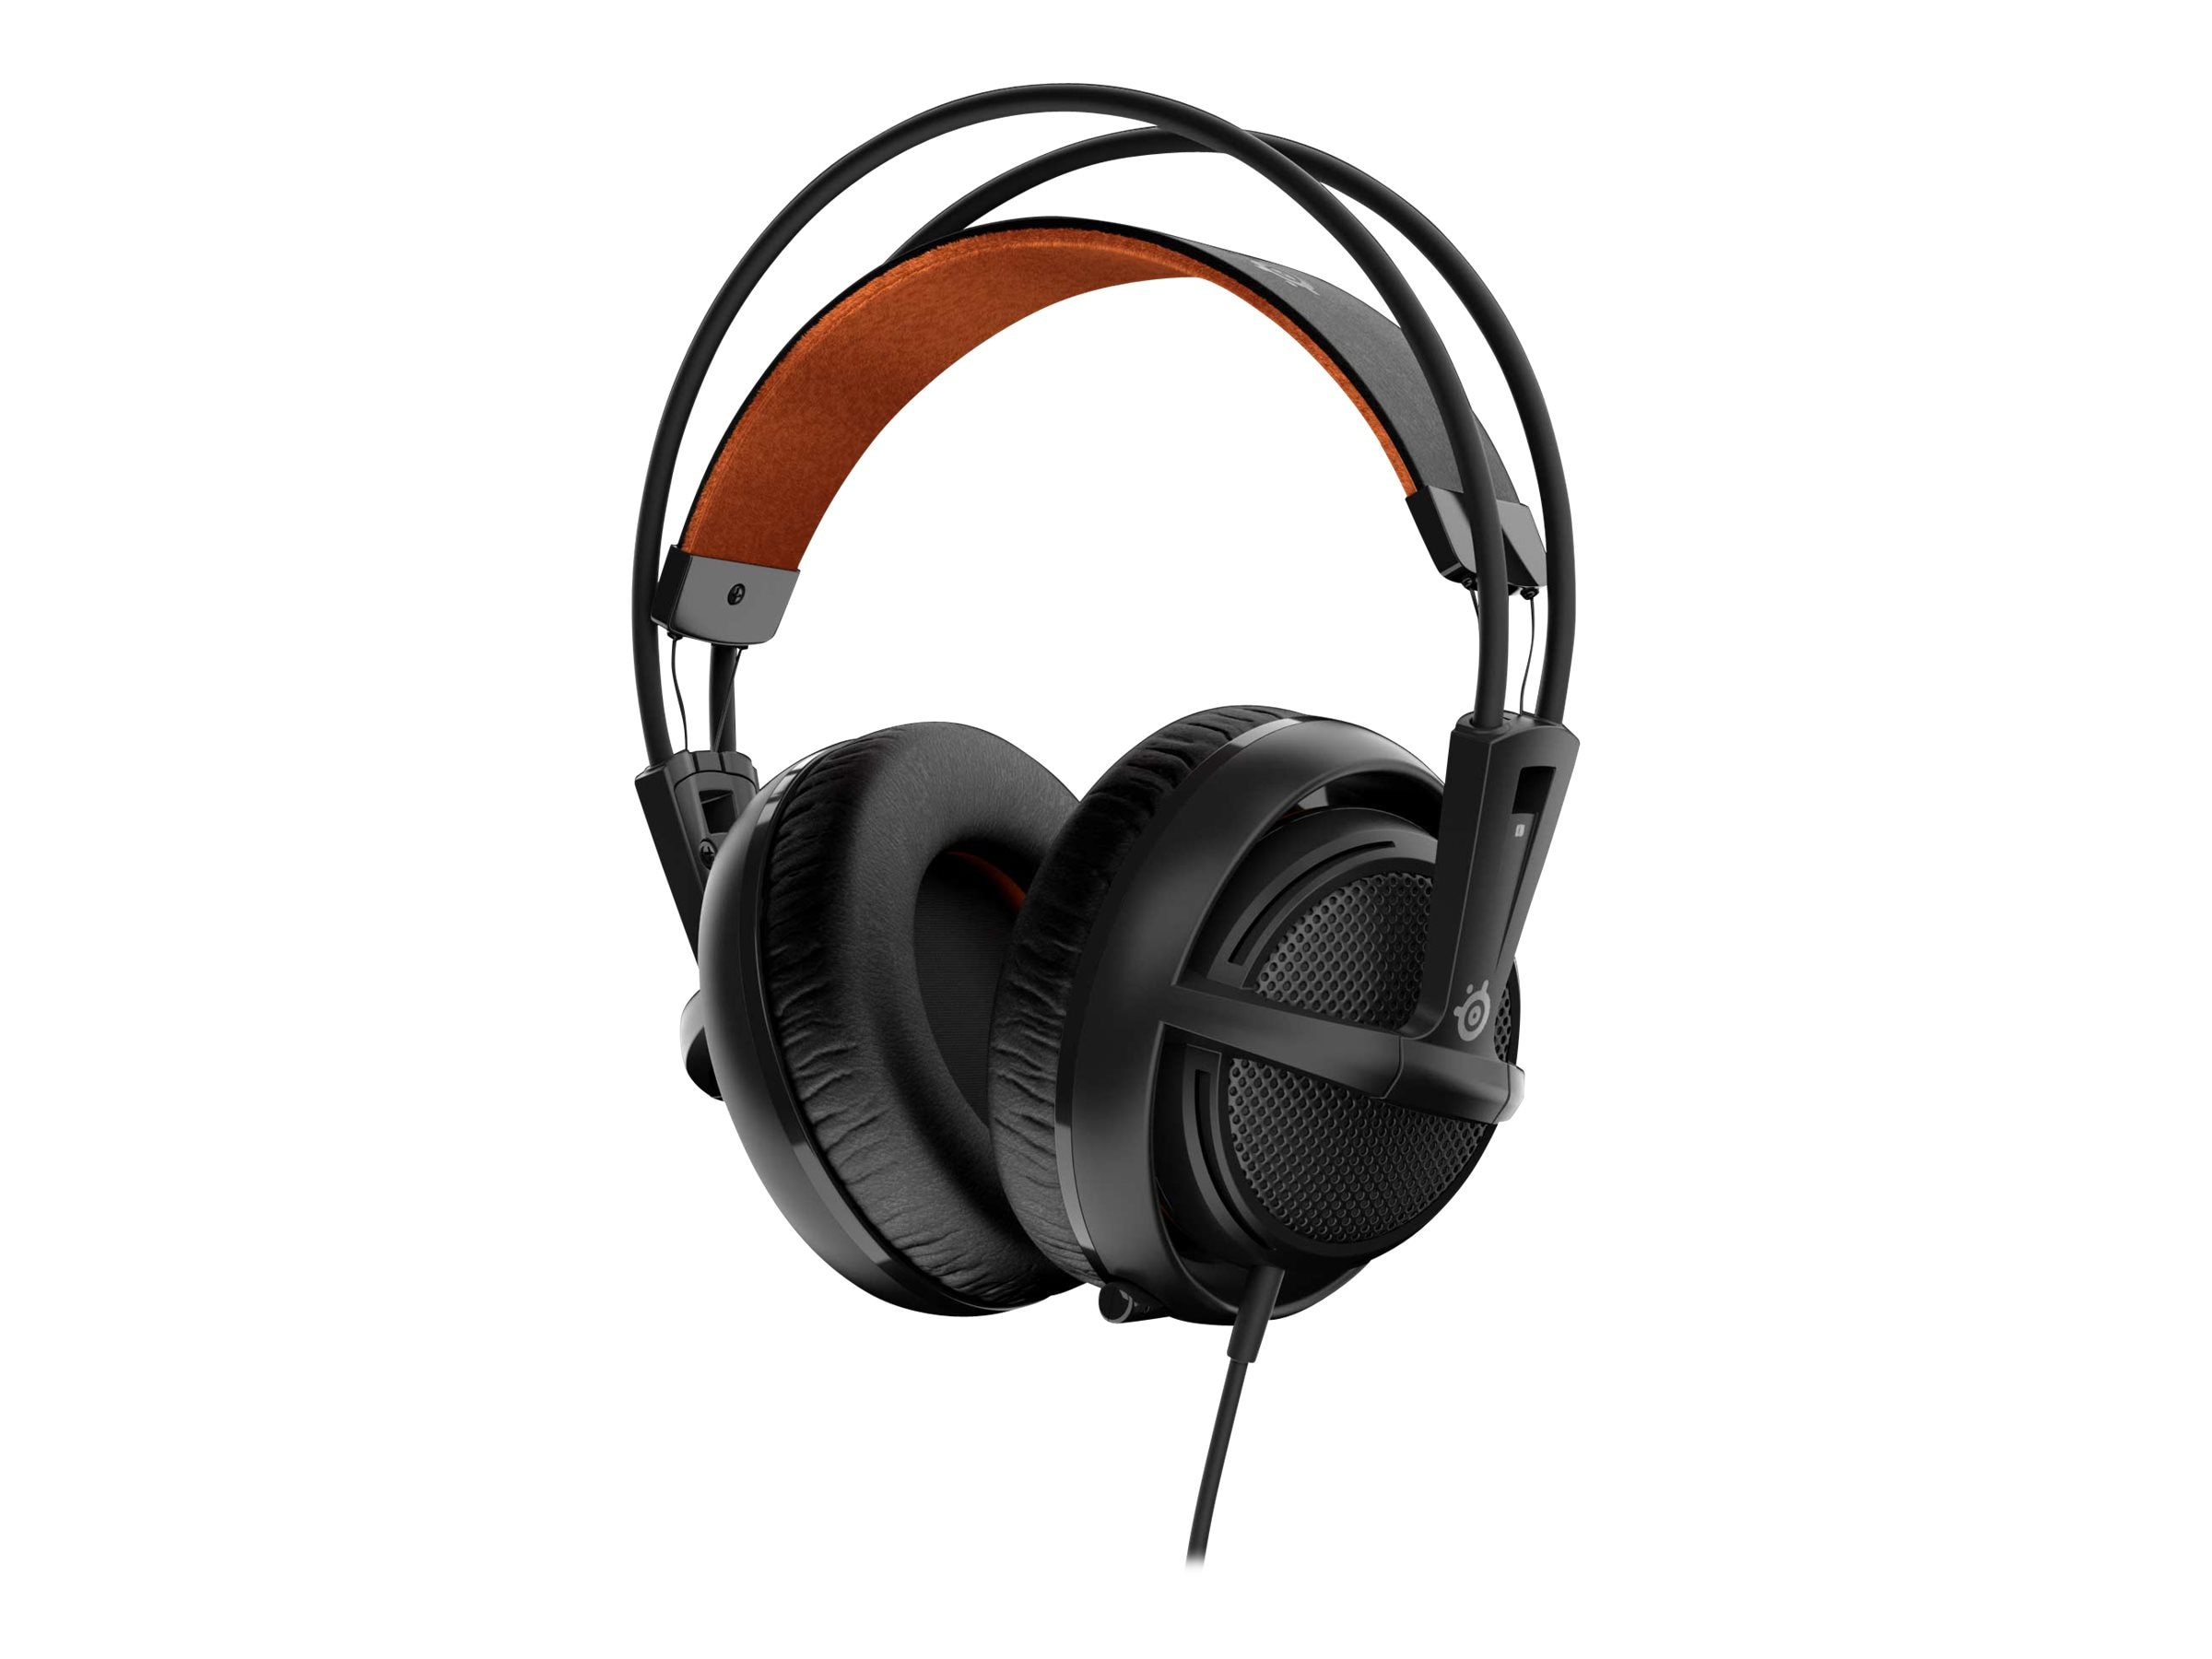 Steelseries Siberia 200 Headset - Black, 51133, 30806620, Headsets (w/ microphone)